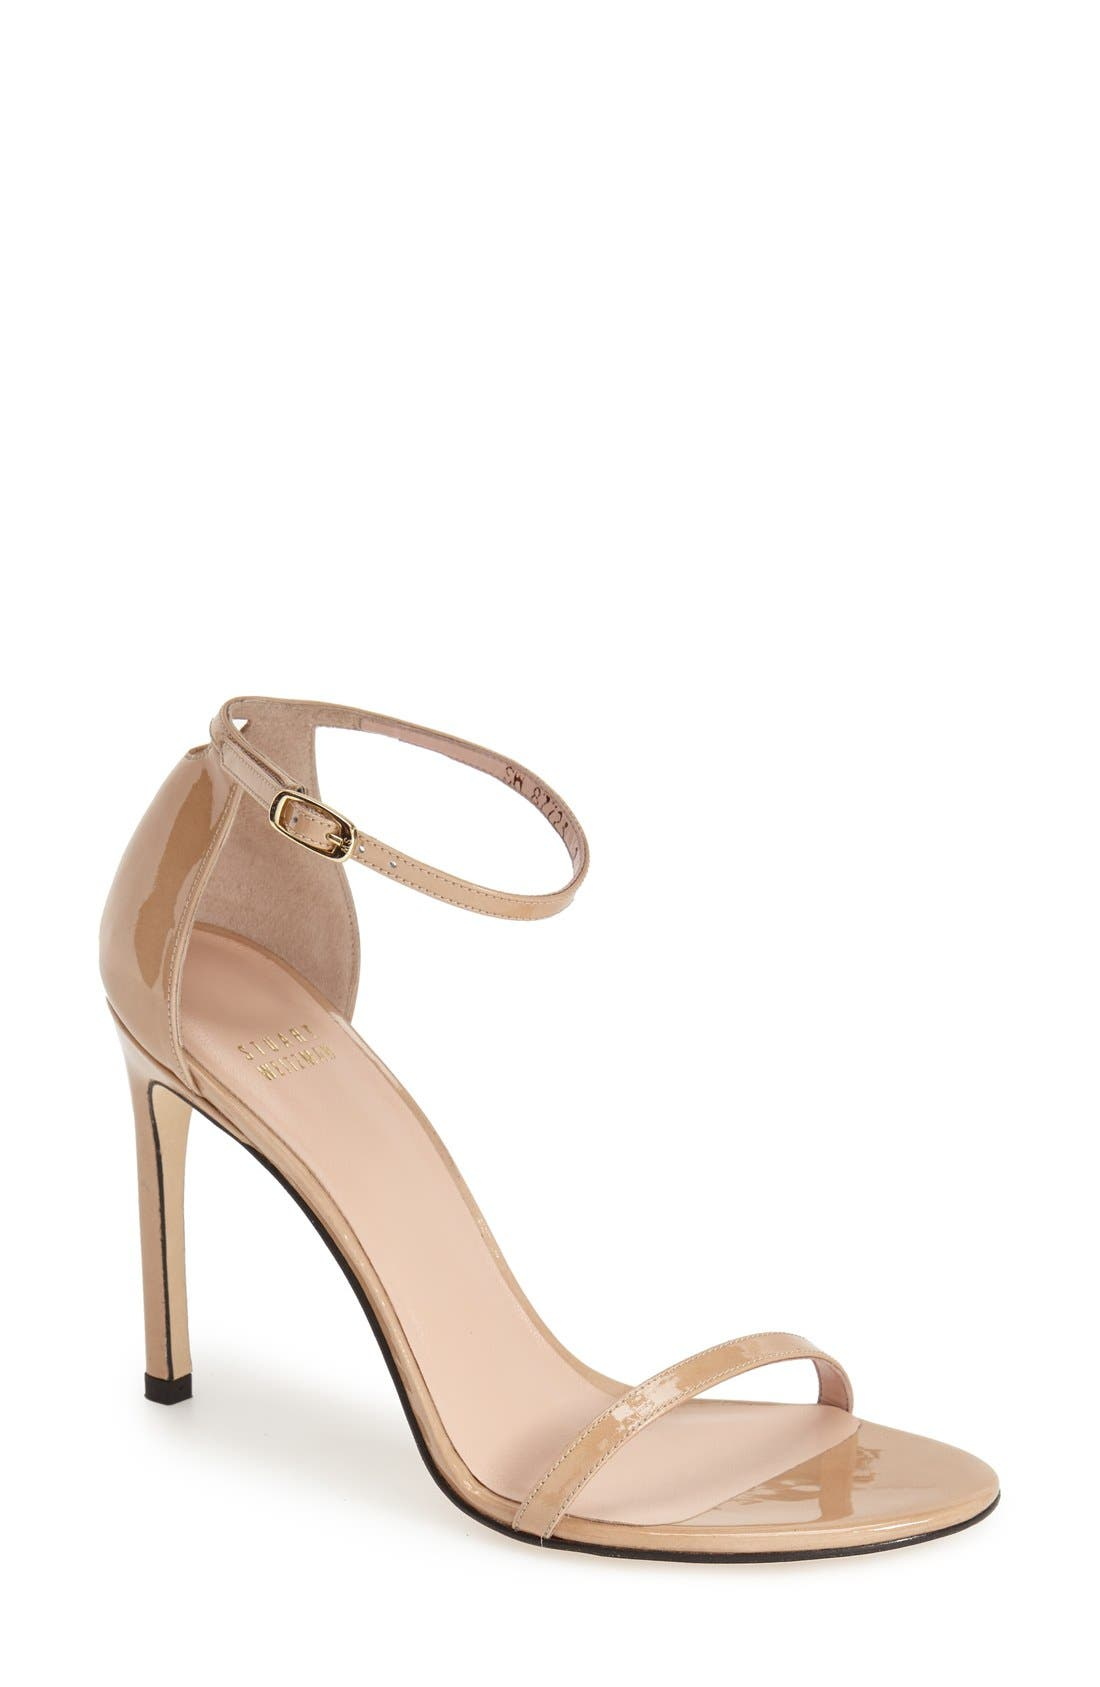 Nudistsong Ankle Strap Sandal,                             Main thumbnail 25, color,